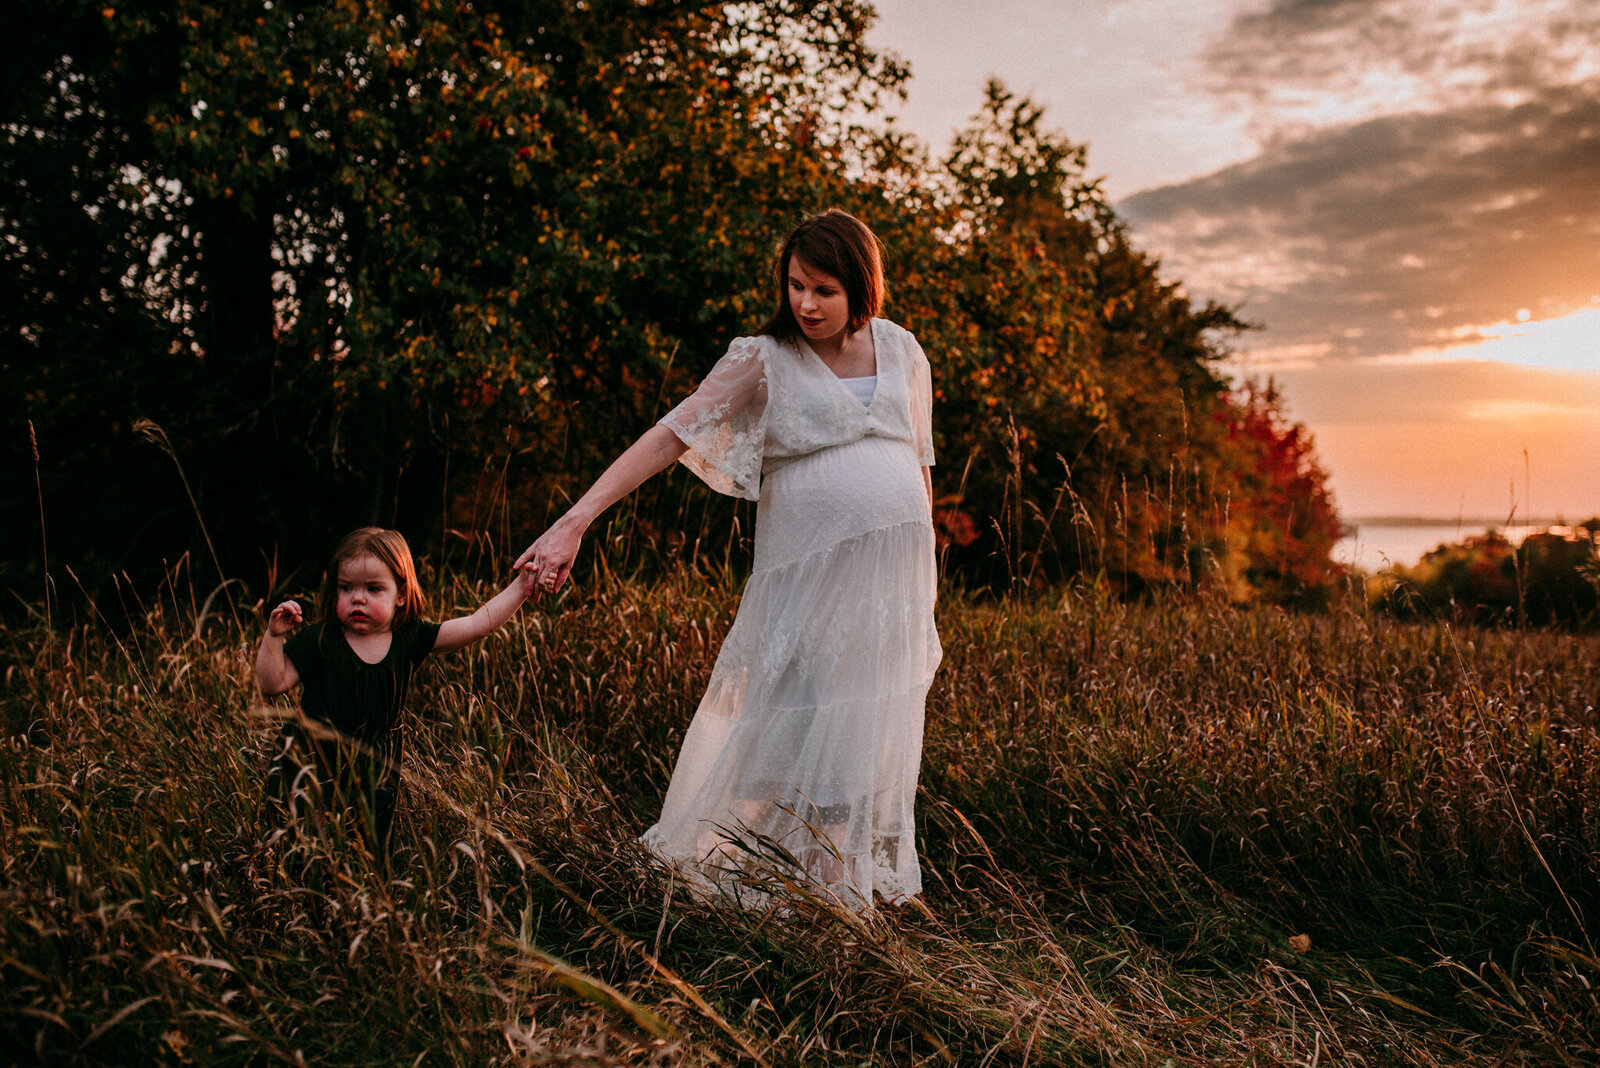 Pregnant mother leading her daughter at sunset in Kawartha Lakes